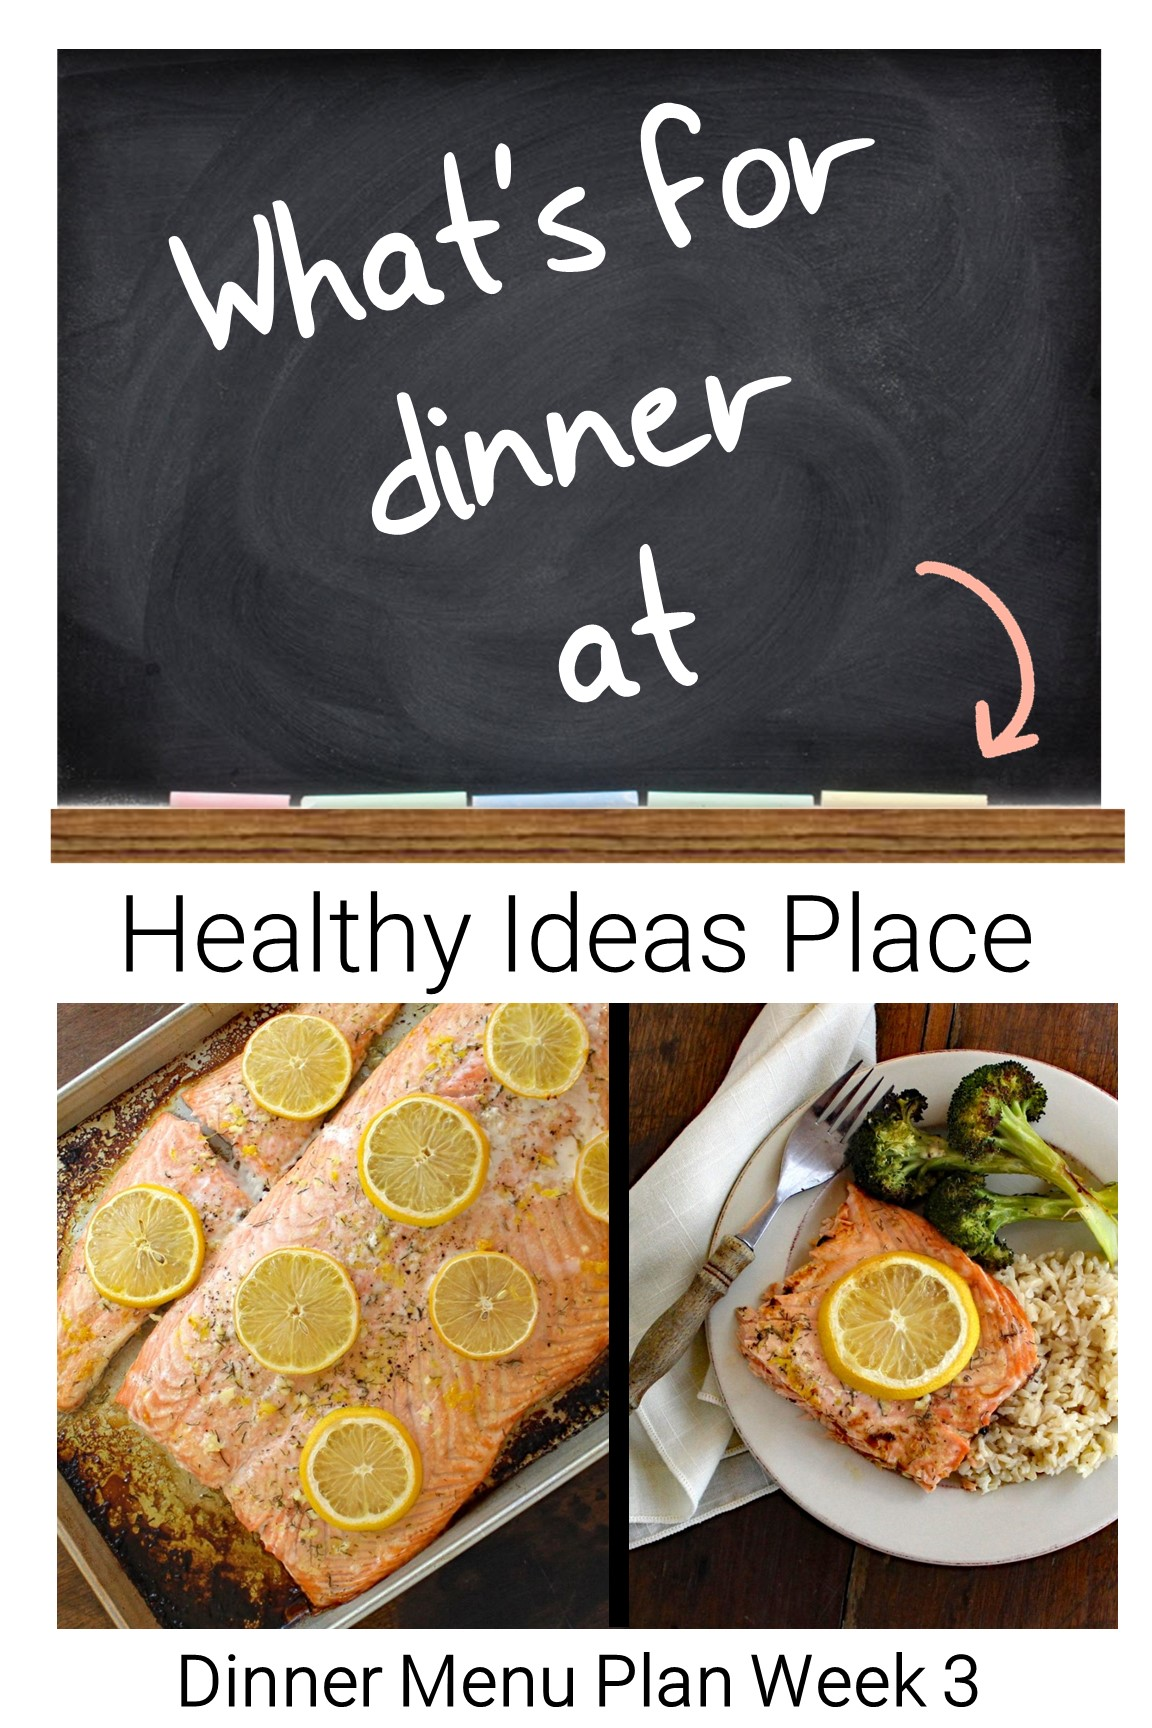 What's for dinner at Healthy Ideas Place? Each week we share a weekly dinner menu to help give you some dinner ideas and inspiration.